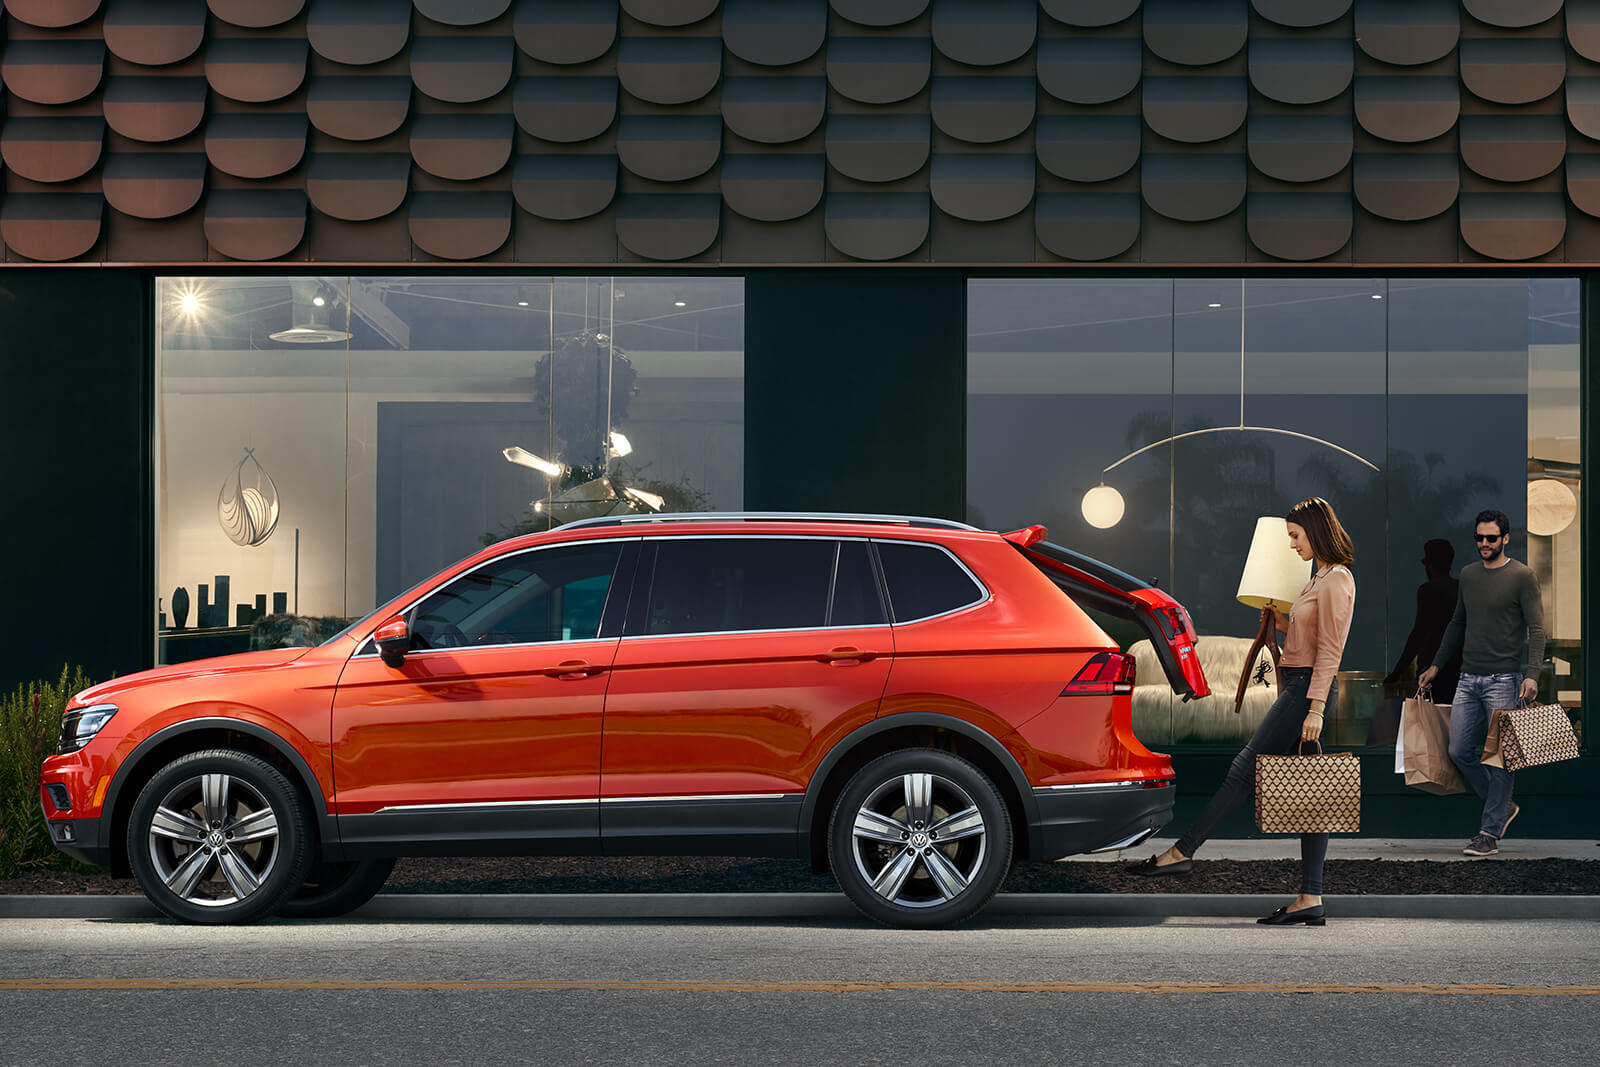 2019 Volkswagen SEL Premium Orange Exterior Side Profile Hands-free Liftgate